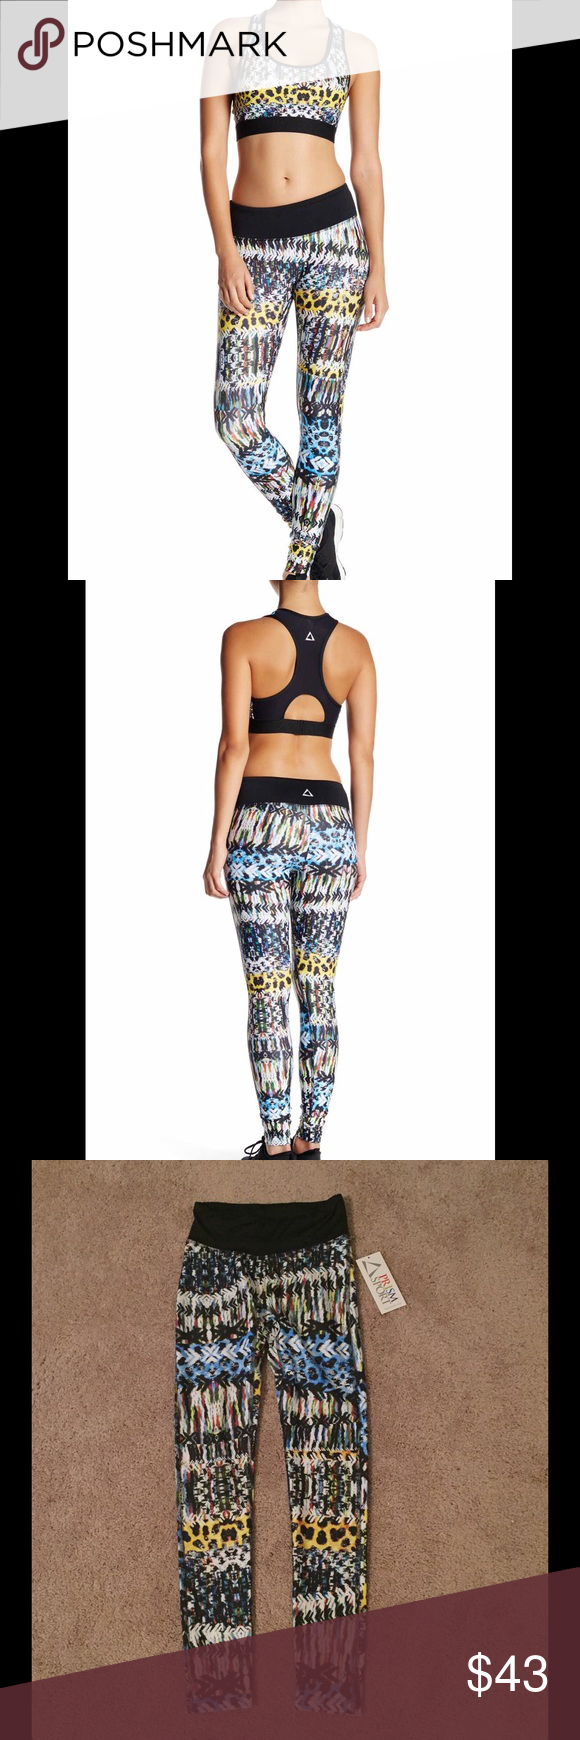 Primsport Legging Elasticized waist, on-seam pocket, multicolor print with contrast solid waist, banded trim, moisture wicking fabric. Made in USA. Printed fabric: 83% polyester, 17% spandex. Solid fabric: 88% polyester, 12% spandex. Machine wash. Primsport Pants Leggings